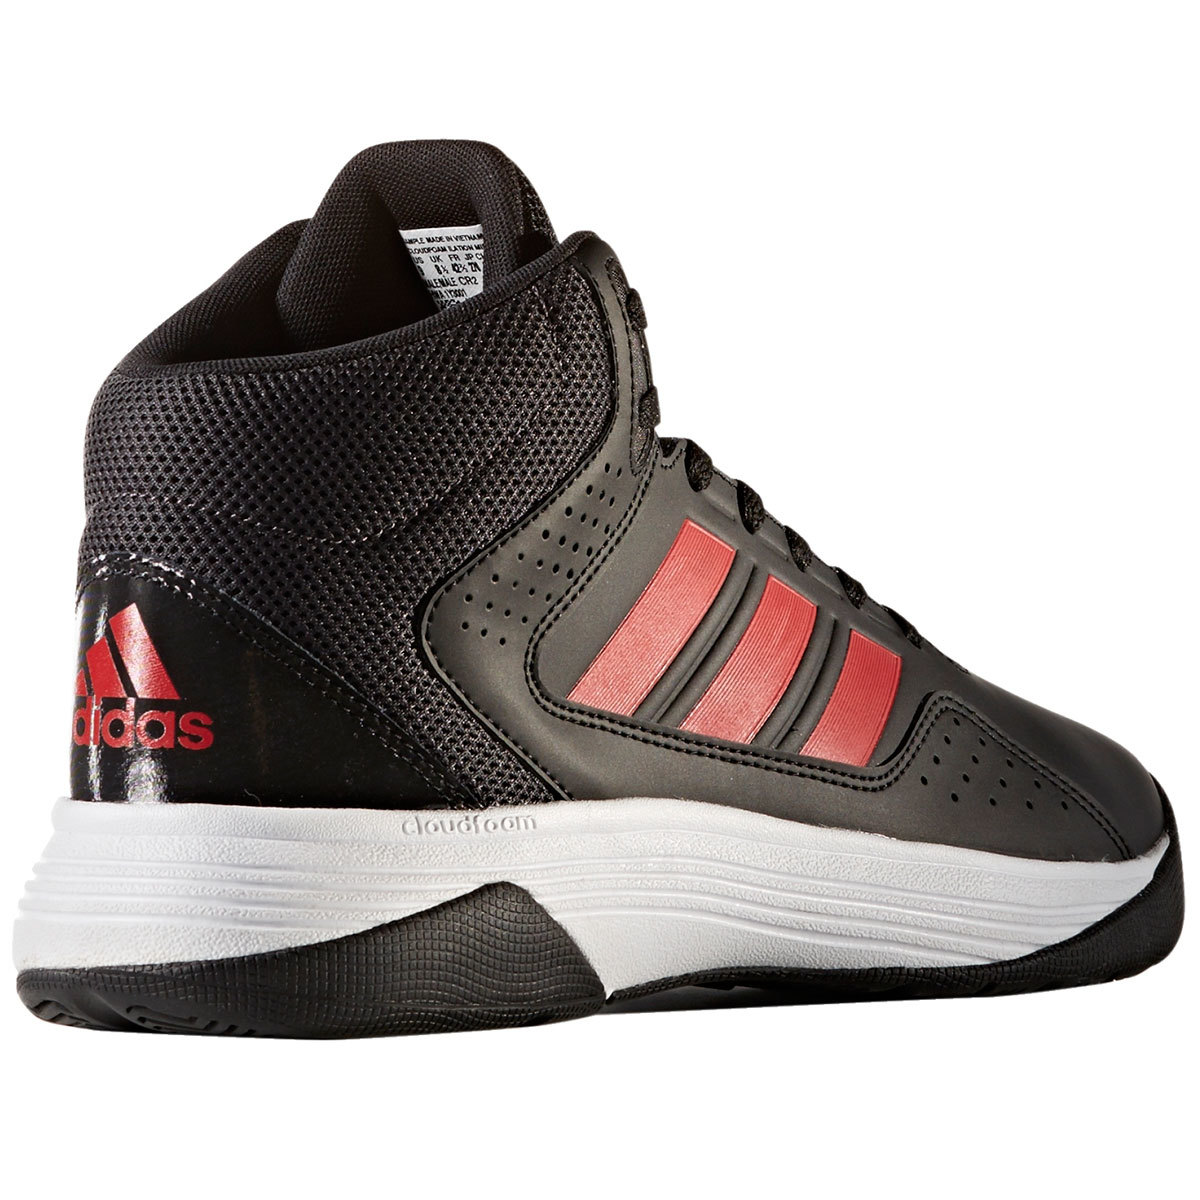 ADIDAS Men's Neo Cloudfoam Ilation Mid Basketball Shoes